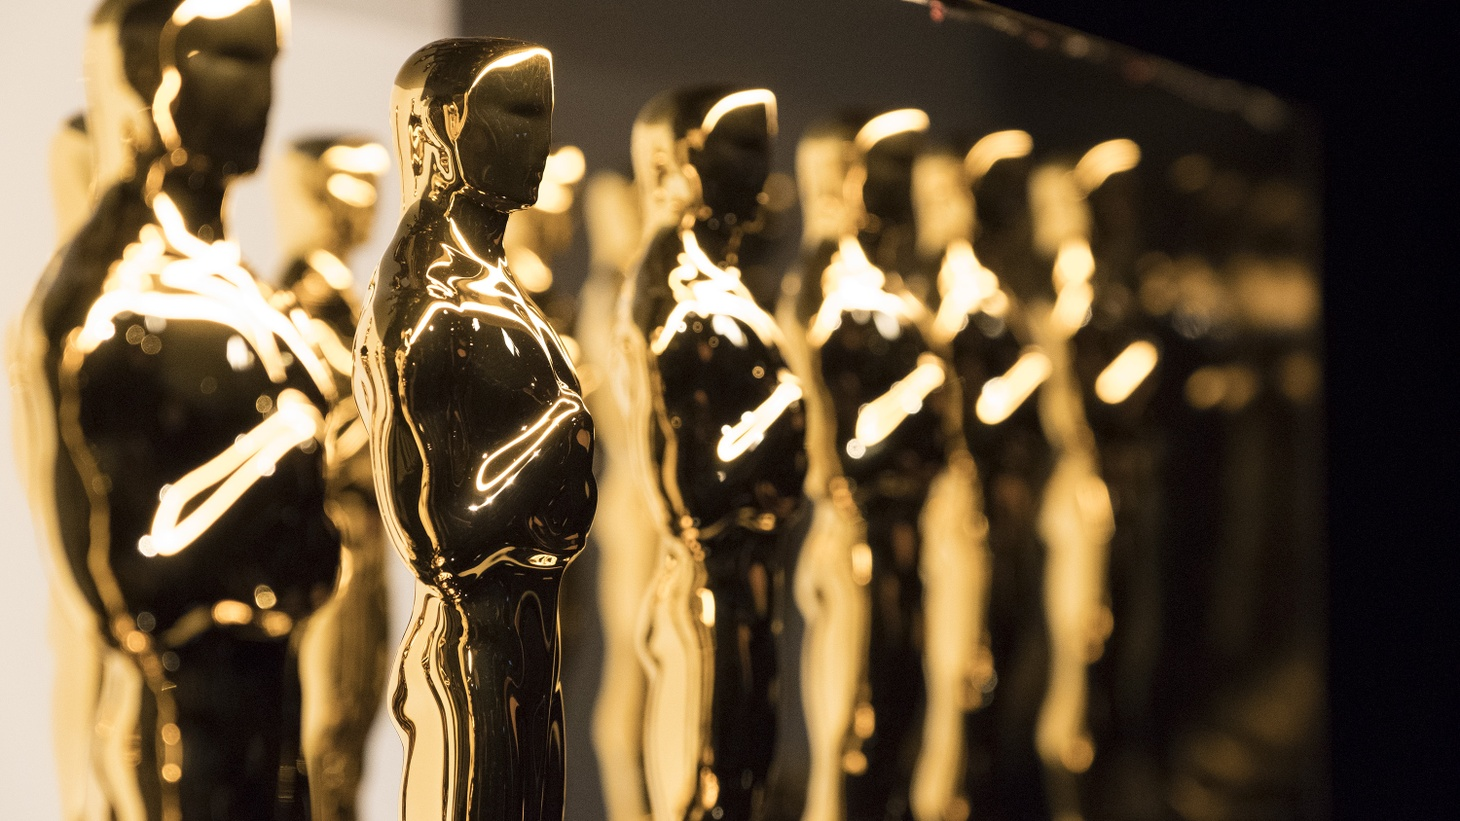 The Academy says the Oscars will now be in April 2021.